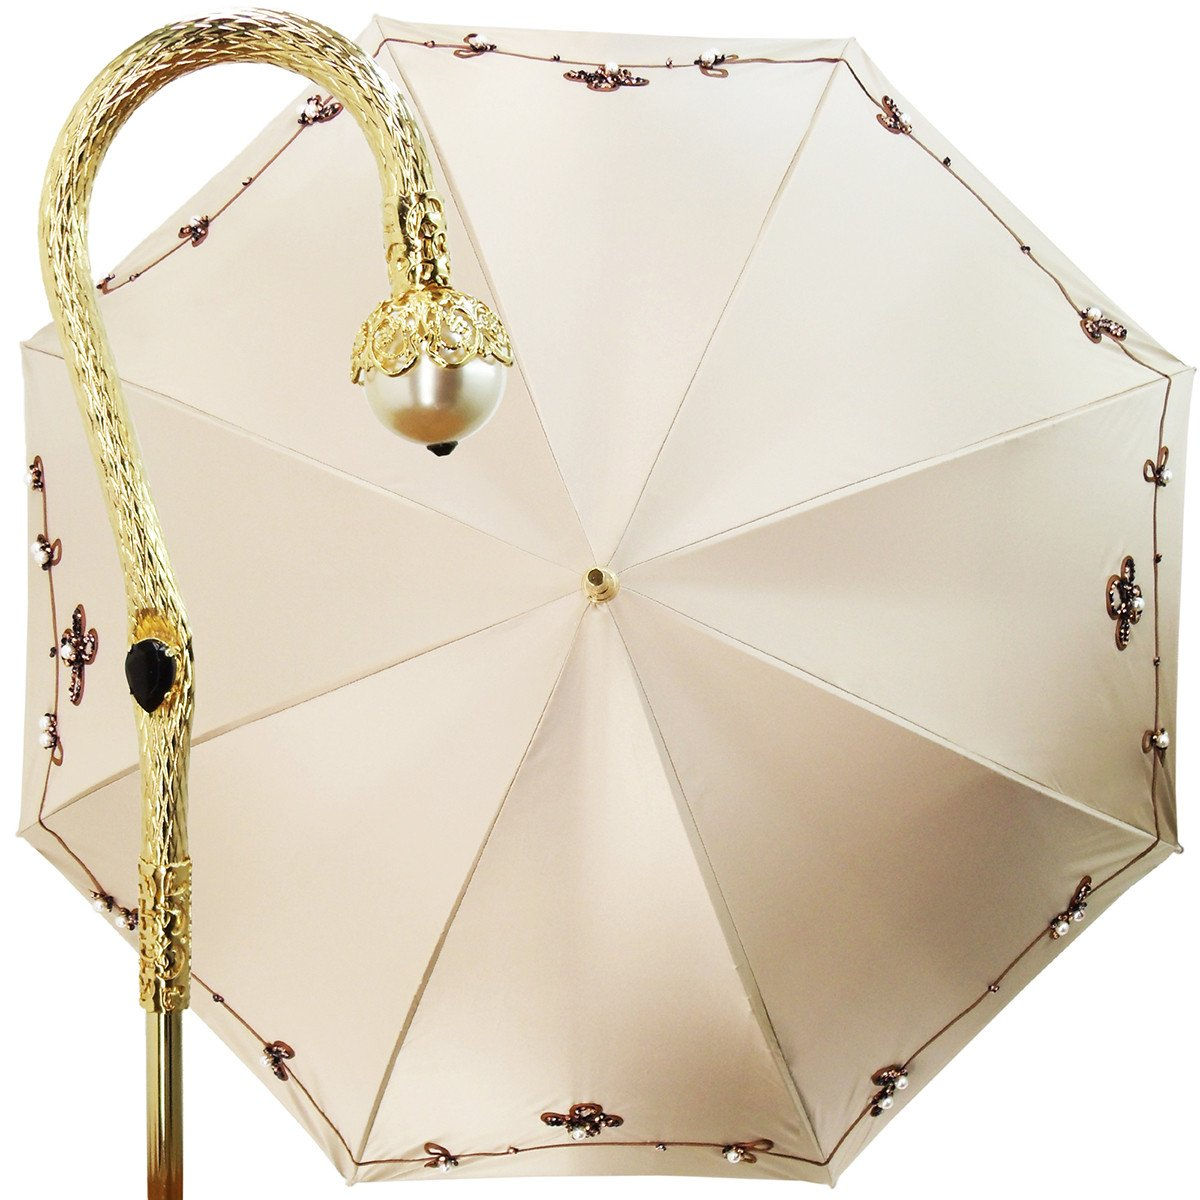 Fashionable Women Embroidery Cream Umbrellas